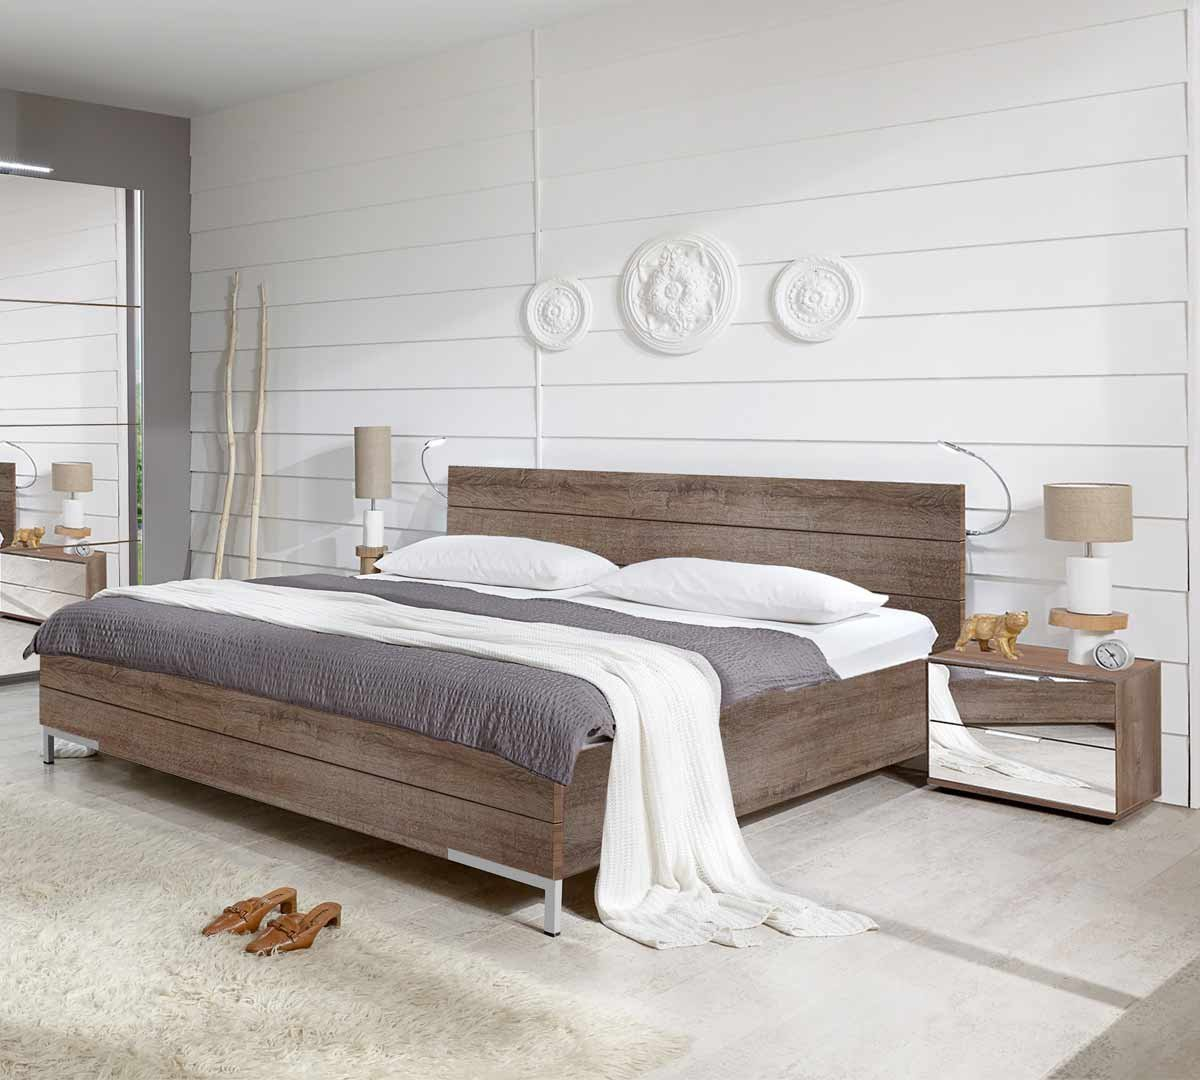 Best London Bed Queen Size London Bedroom Sets Home With Pictures